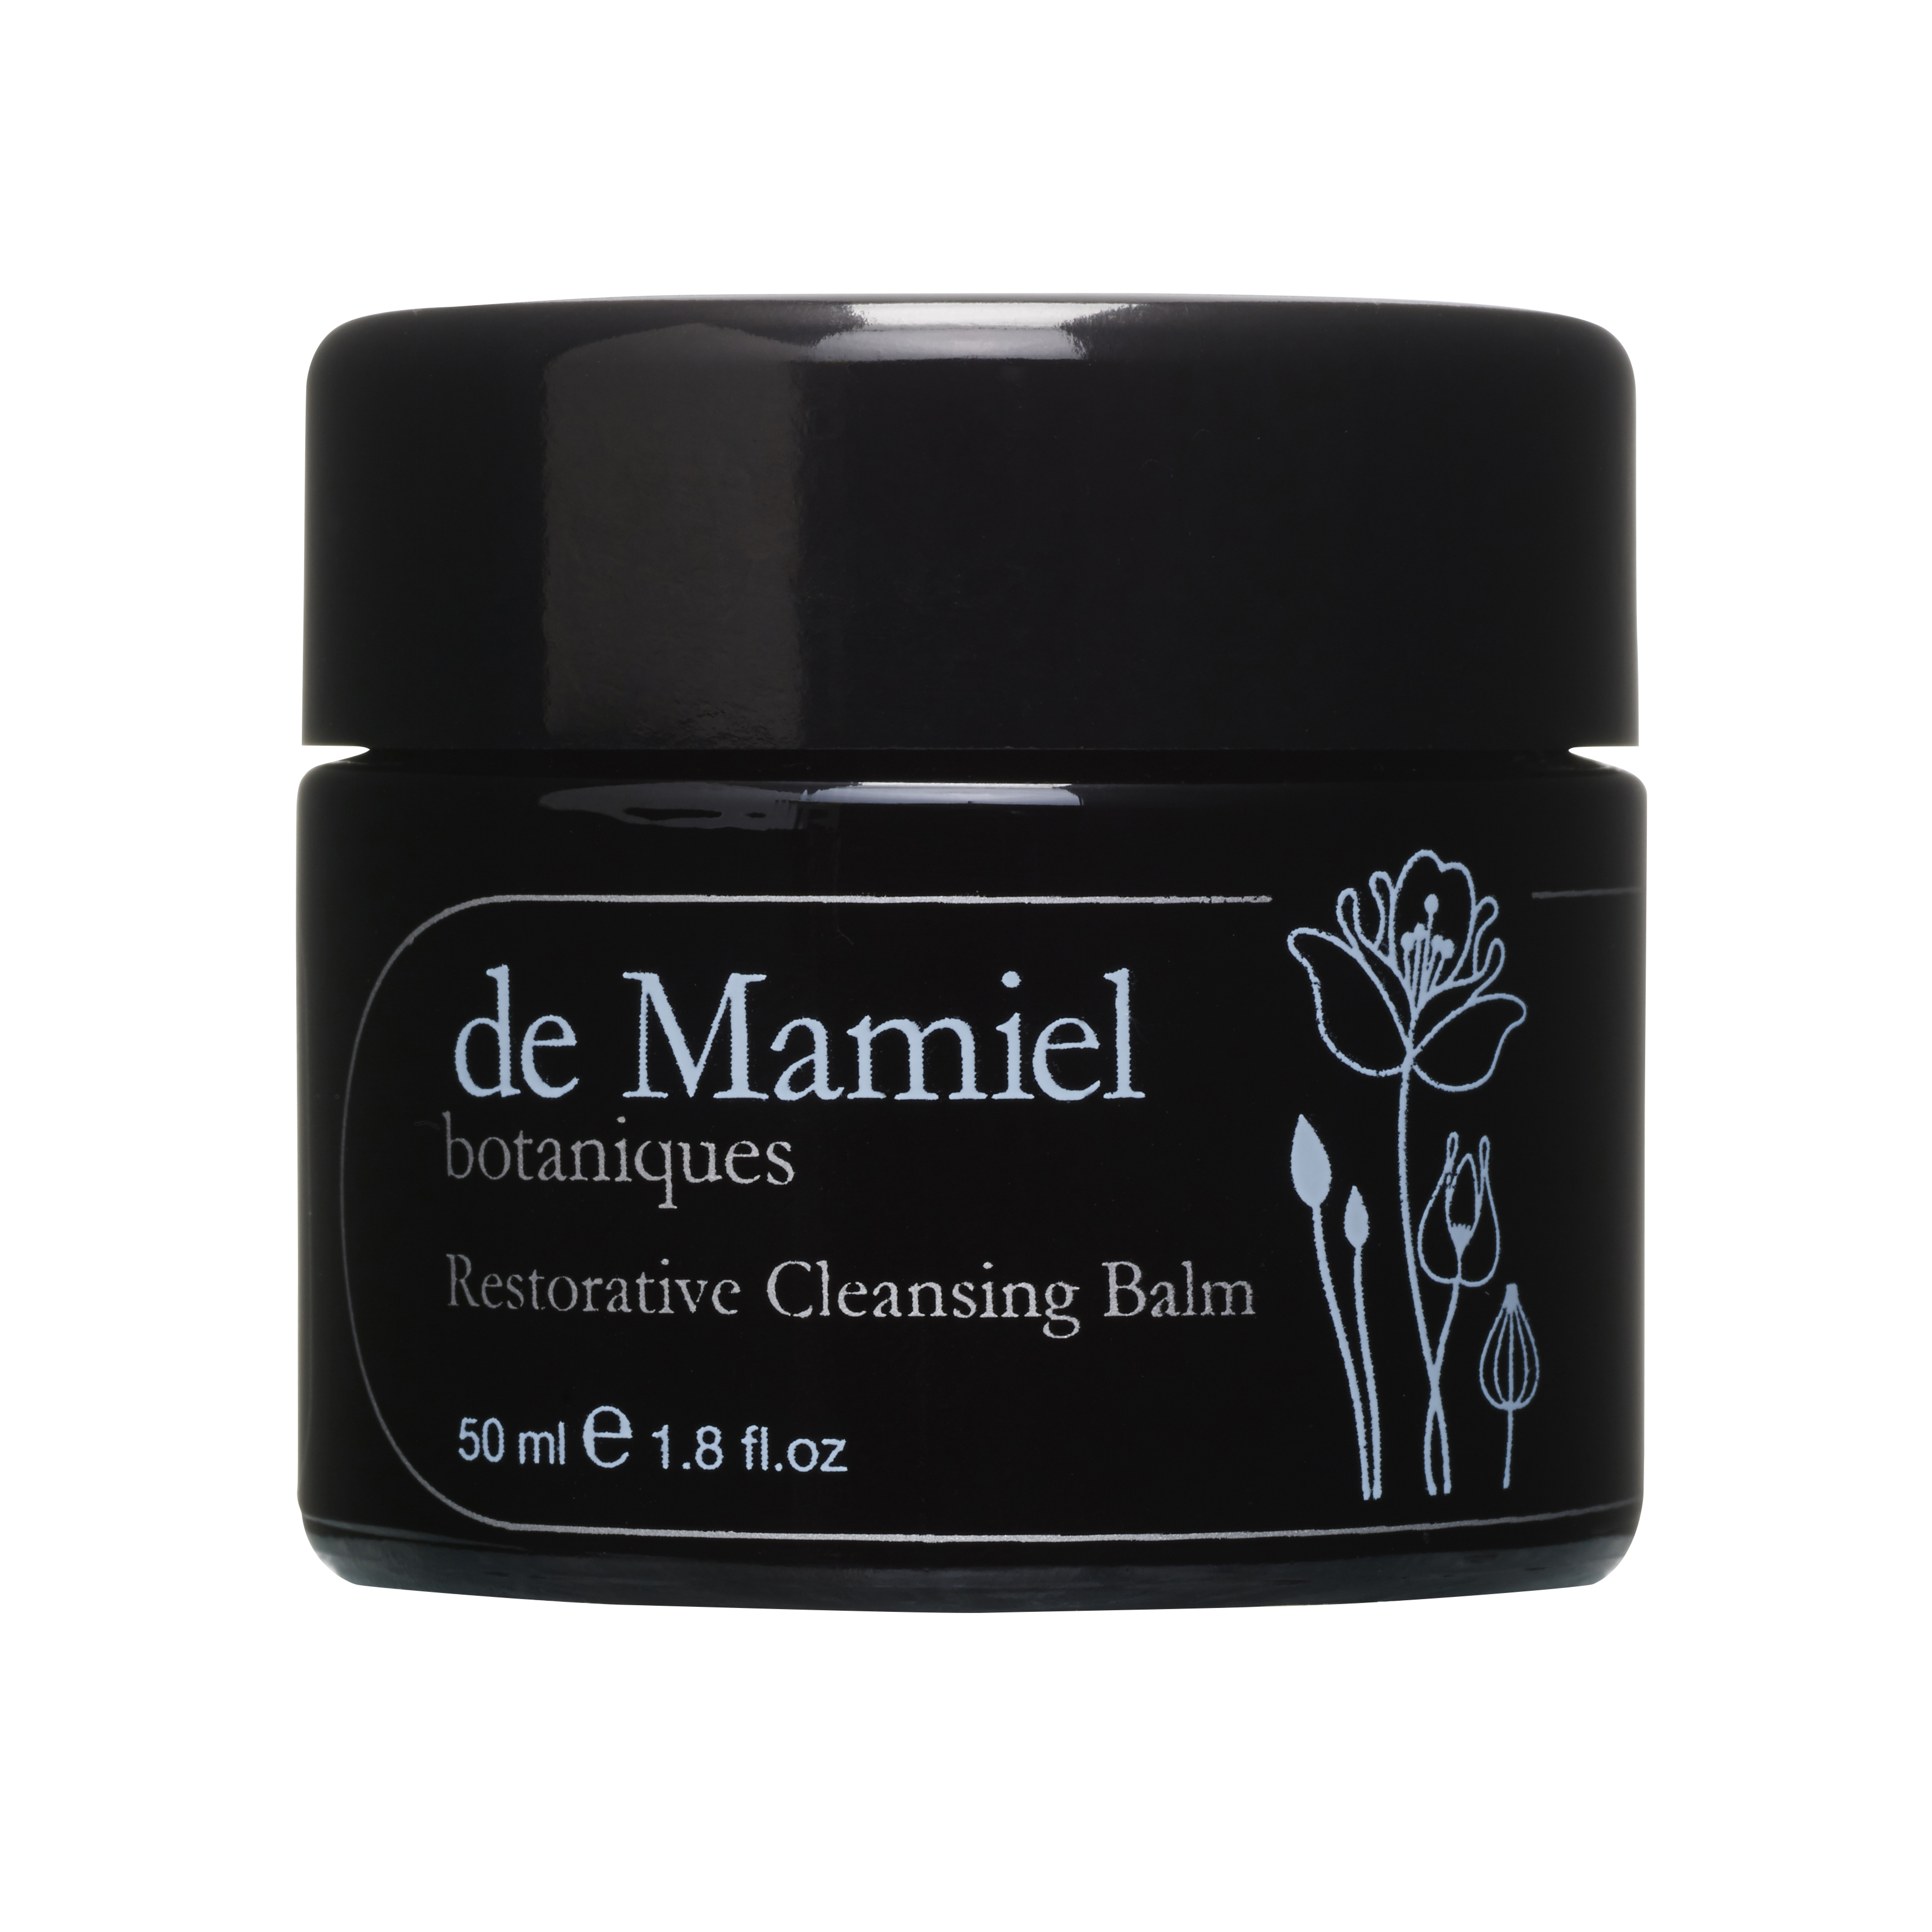 De Mamiel Restorative Cleansing Balm 50ml